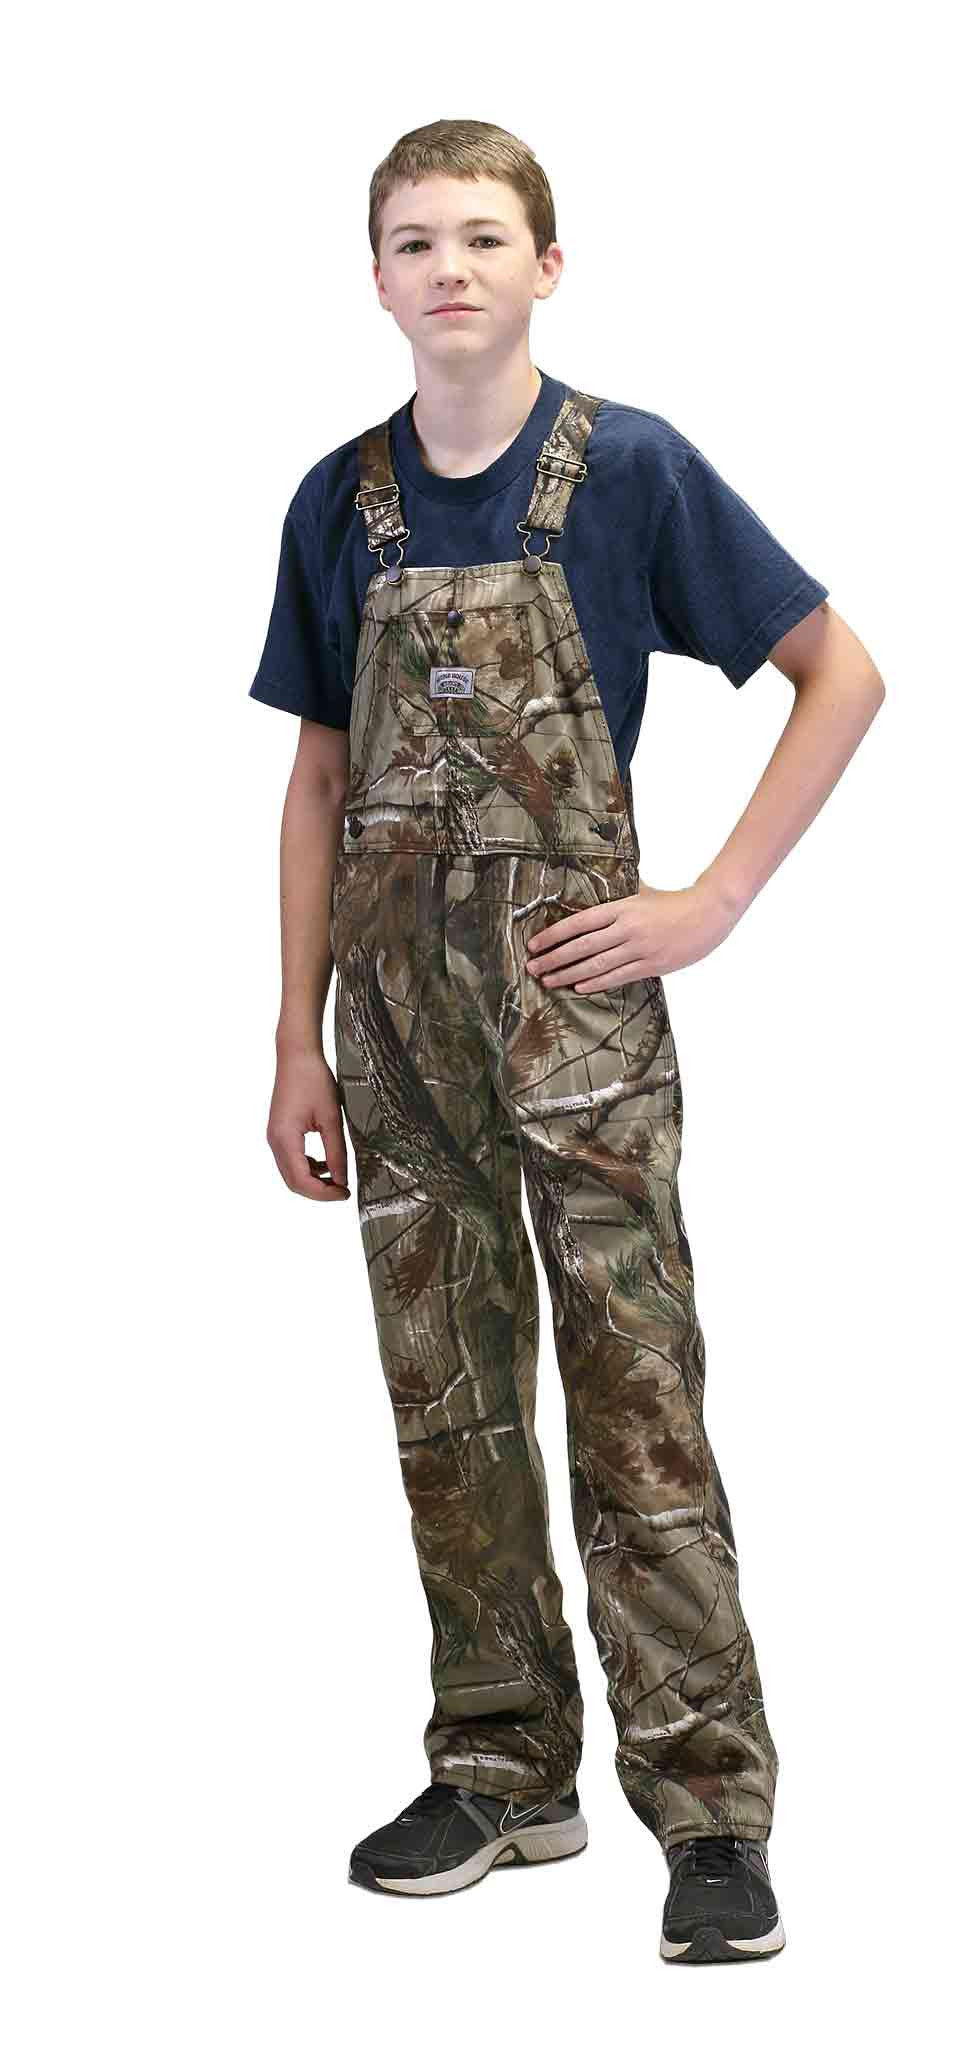 Boys Camo Overalls Mossy Oak Break-Up American Made Bib Overalls Made in  USA – Round House American Made Jeans Made in USA Overalls, Workwear